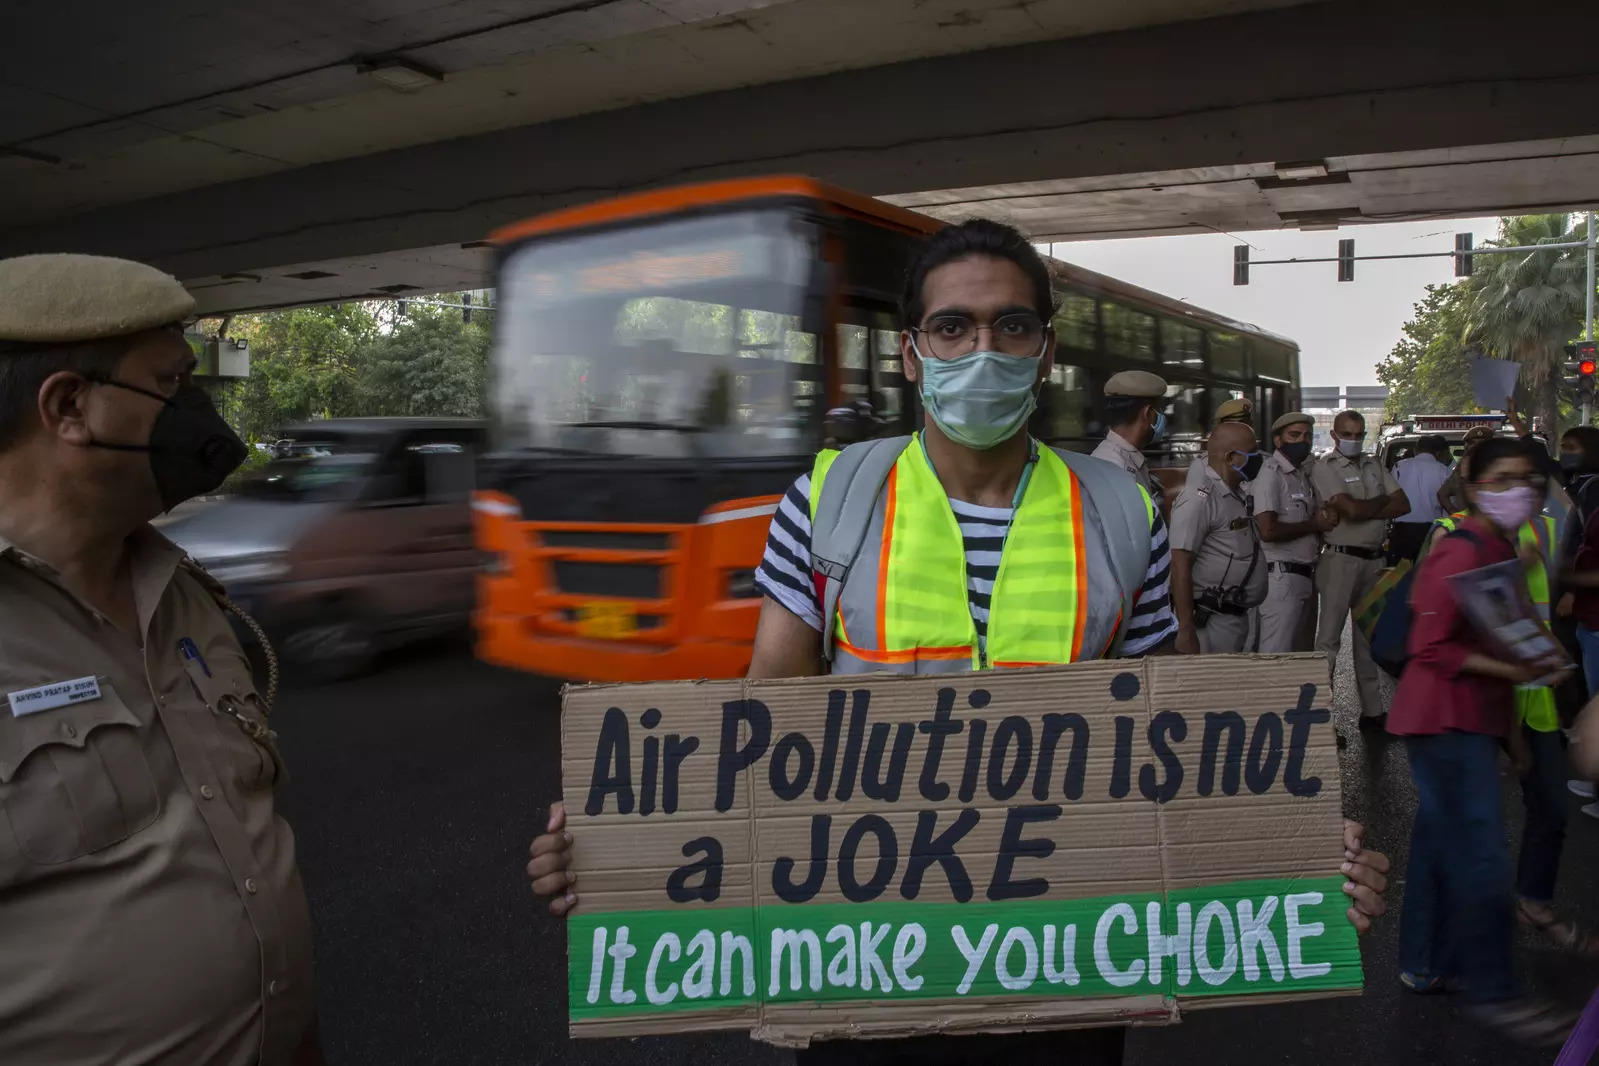 A student activist holds a placard as he participates in a protest march against climate change in New Delhi, India, Friday, March 19, 2021.Photo/Altaf Qadri)